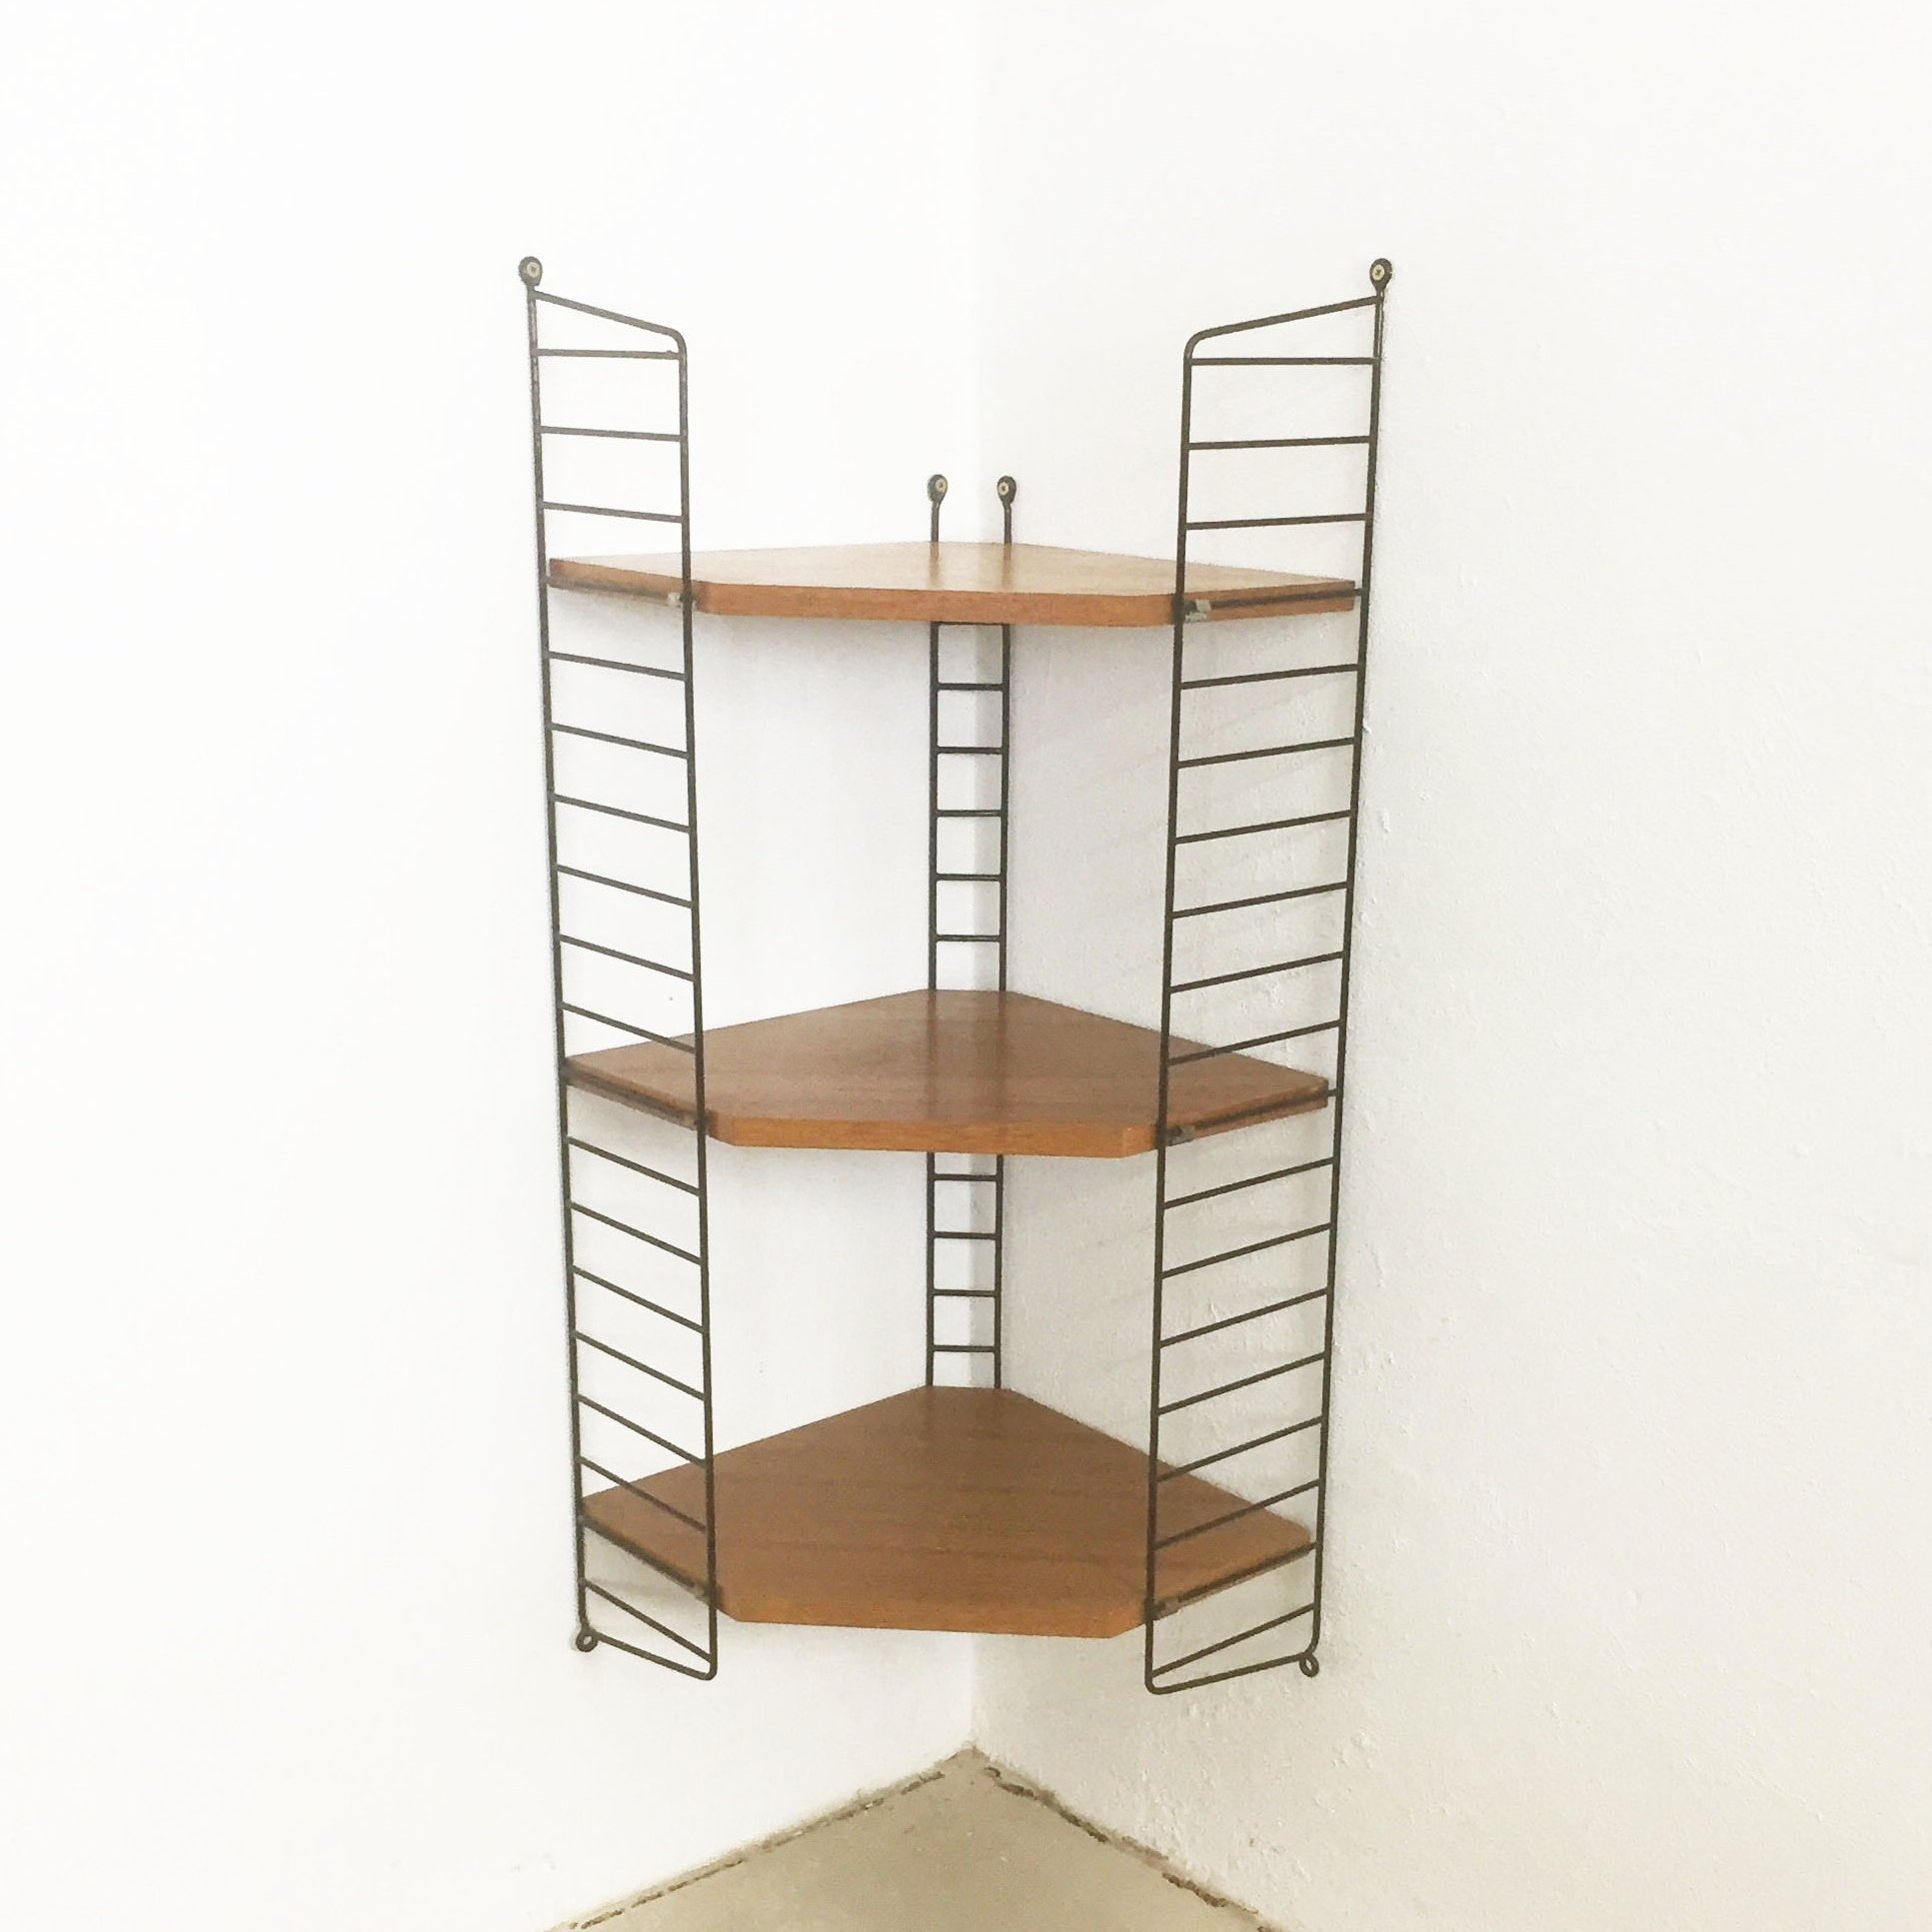 Light Teak Wood String Wall Unit By Nisse Strinning For